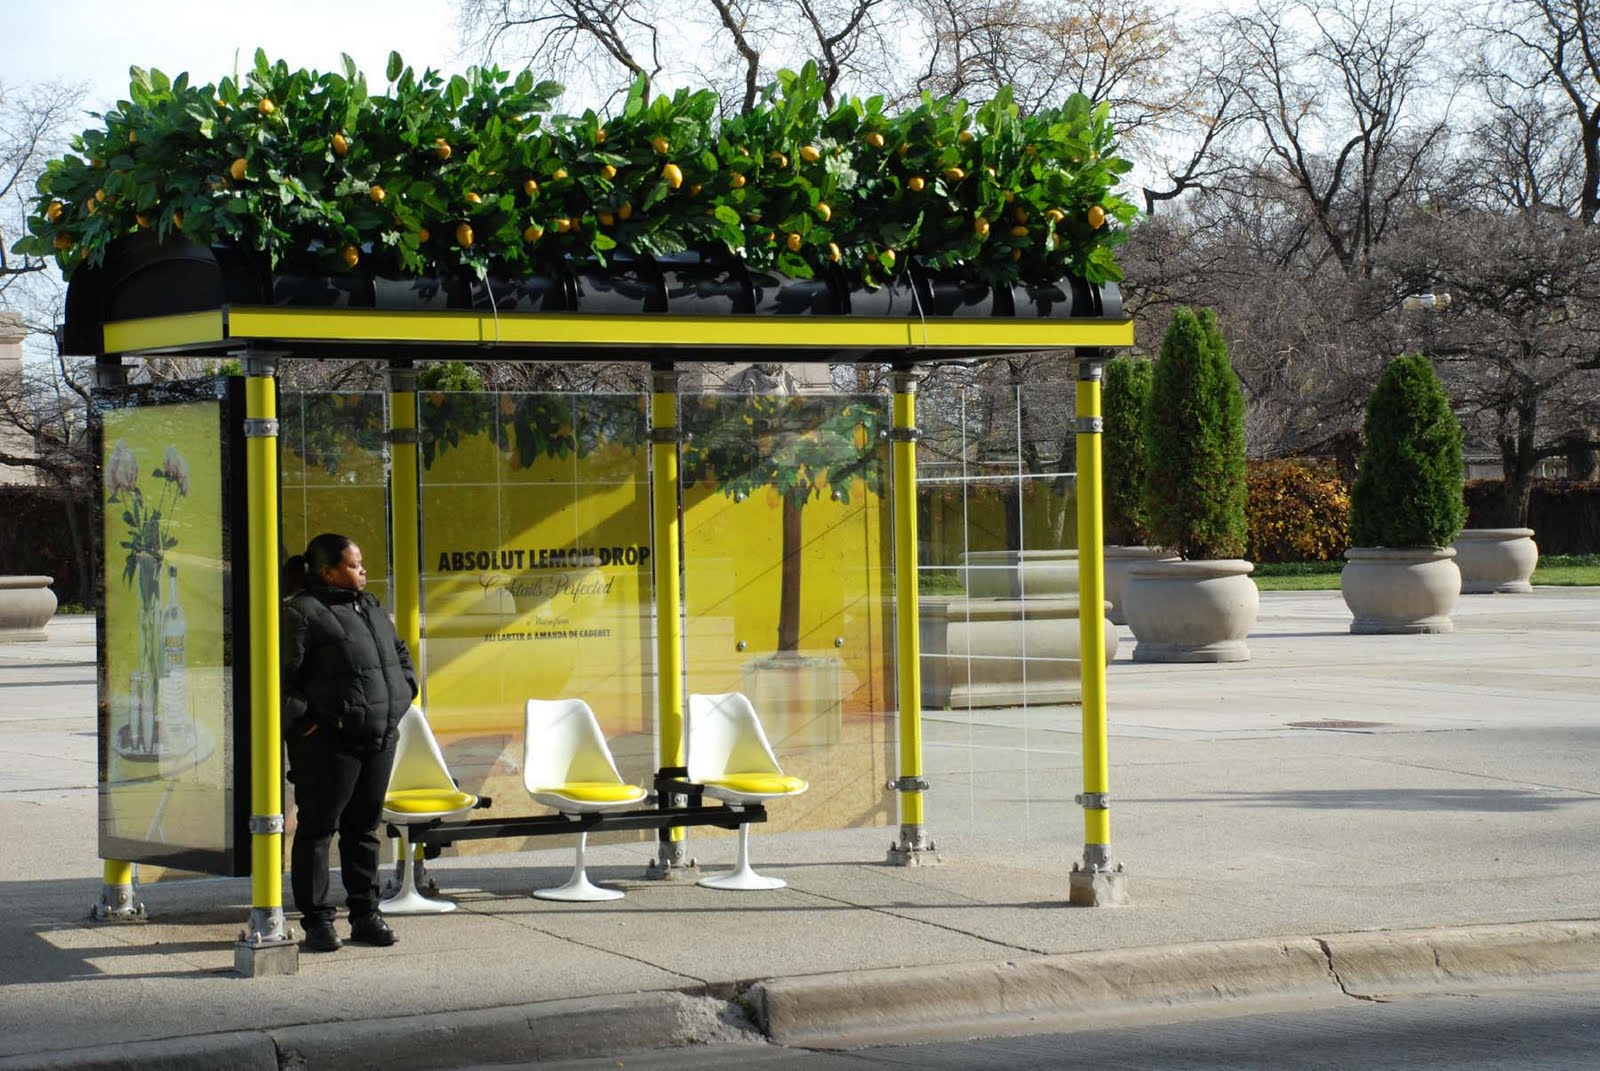 W W Media Image: ABSOLUT BUS STOP